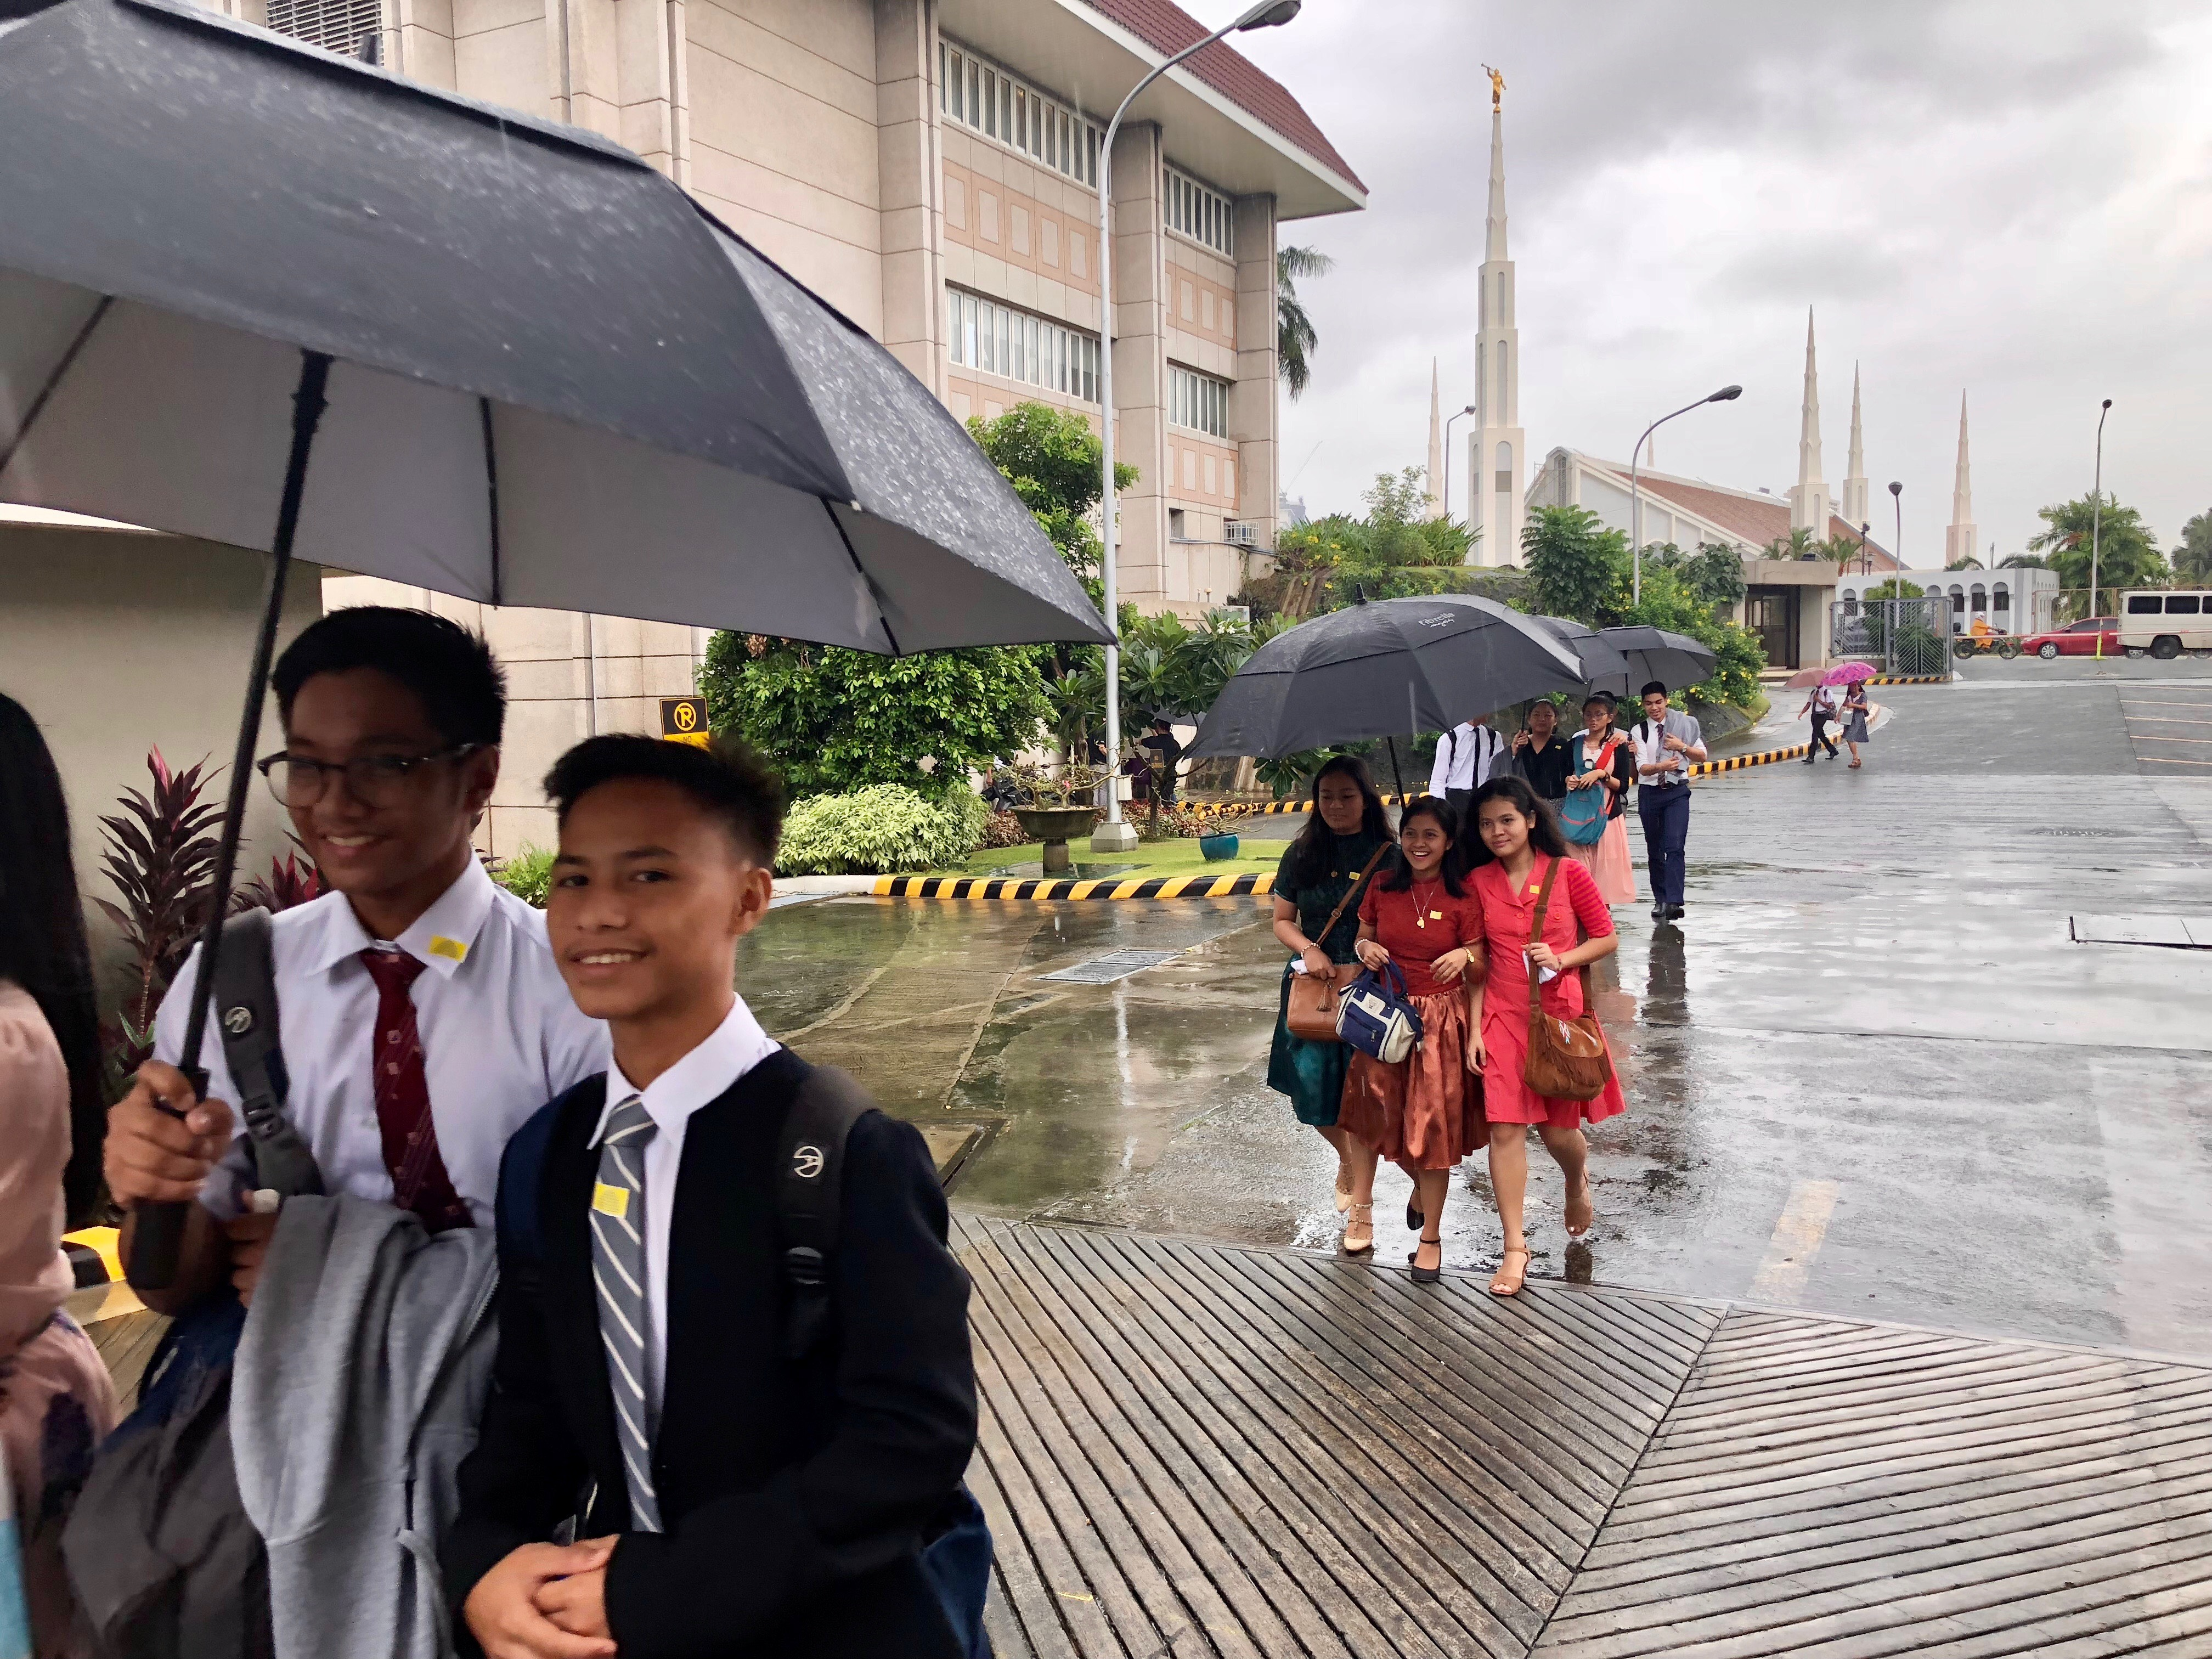 Youth in the Philippines participate in the Face to Face event on Aug. 11, 2018, with Elder Gary E. Stevenson of the Quorum of the Twelve Apostles and his wife, Sister Lesa Stevenson.